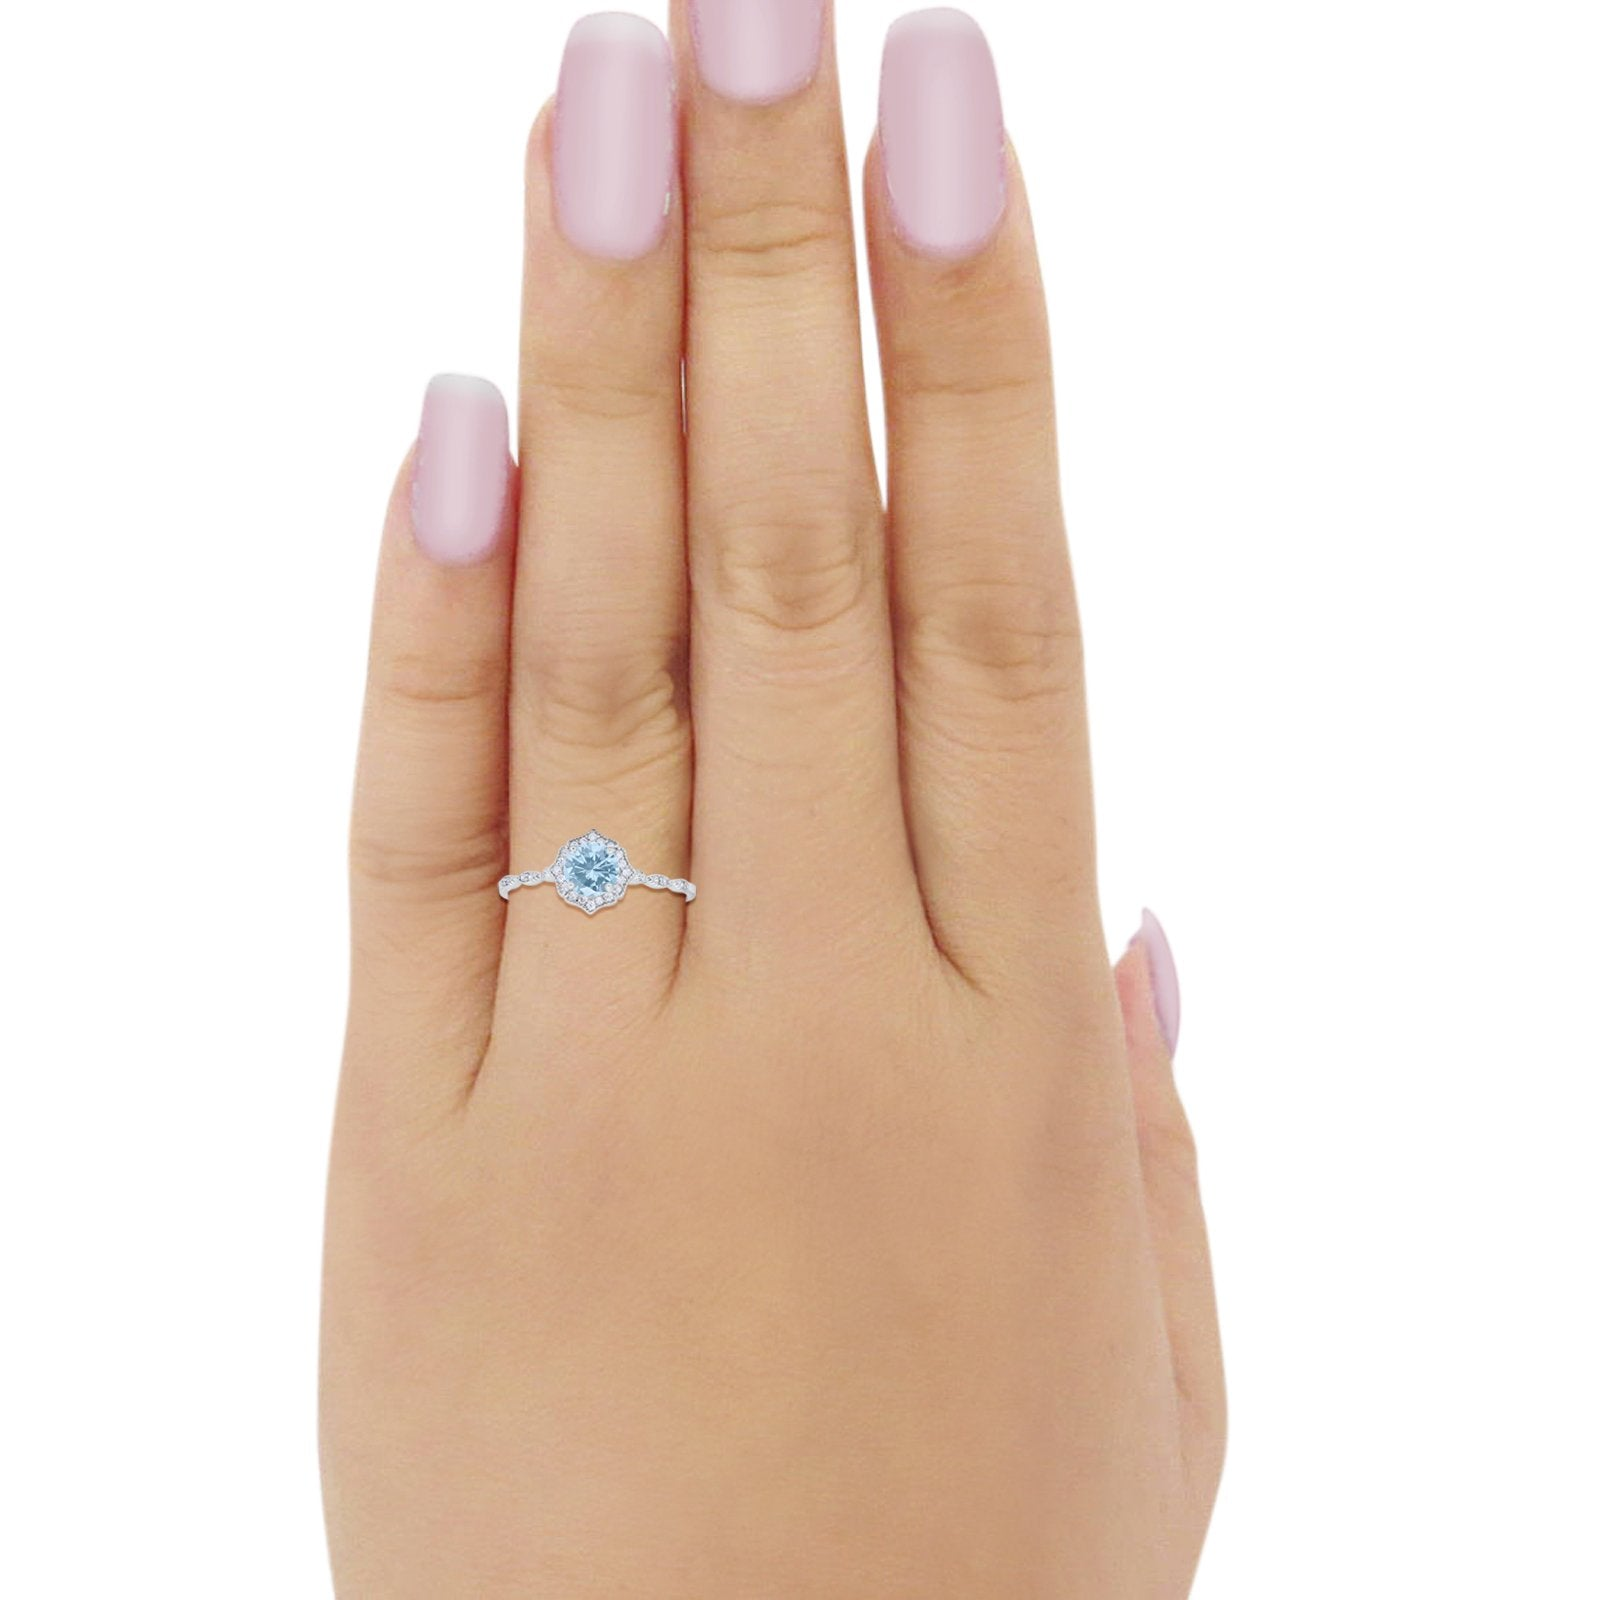 Round Art Deco Petite Dainty Wedding Engagement Ring Round Cubic Zirconia 925 Sterling Silver